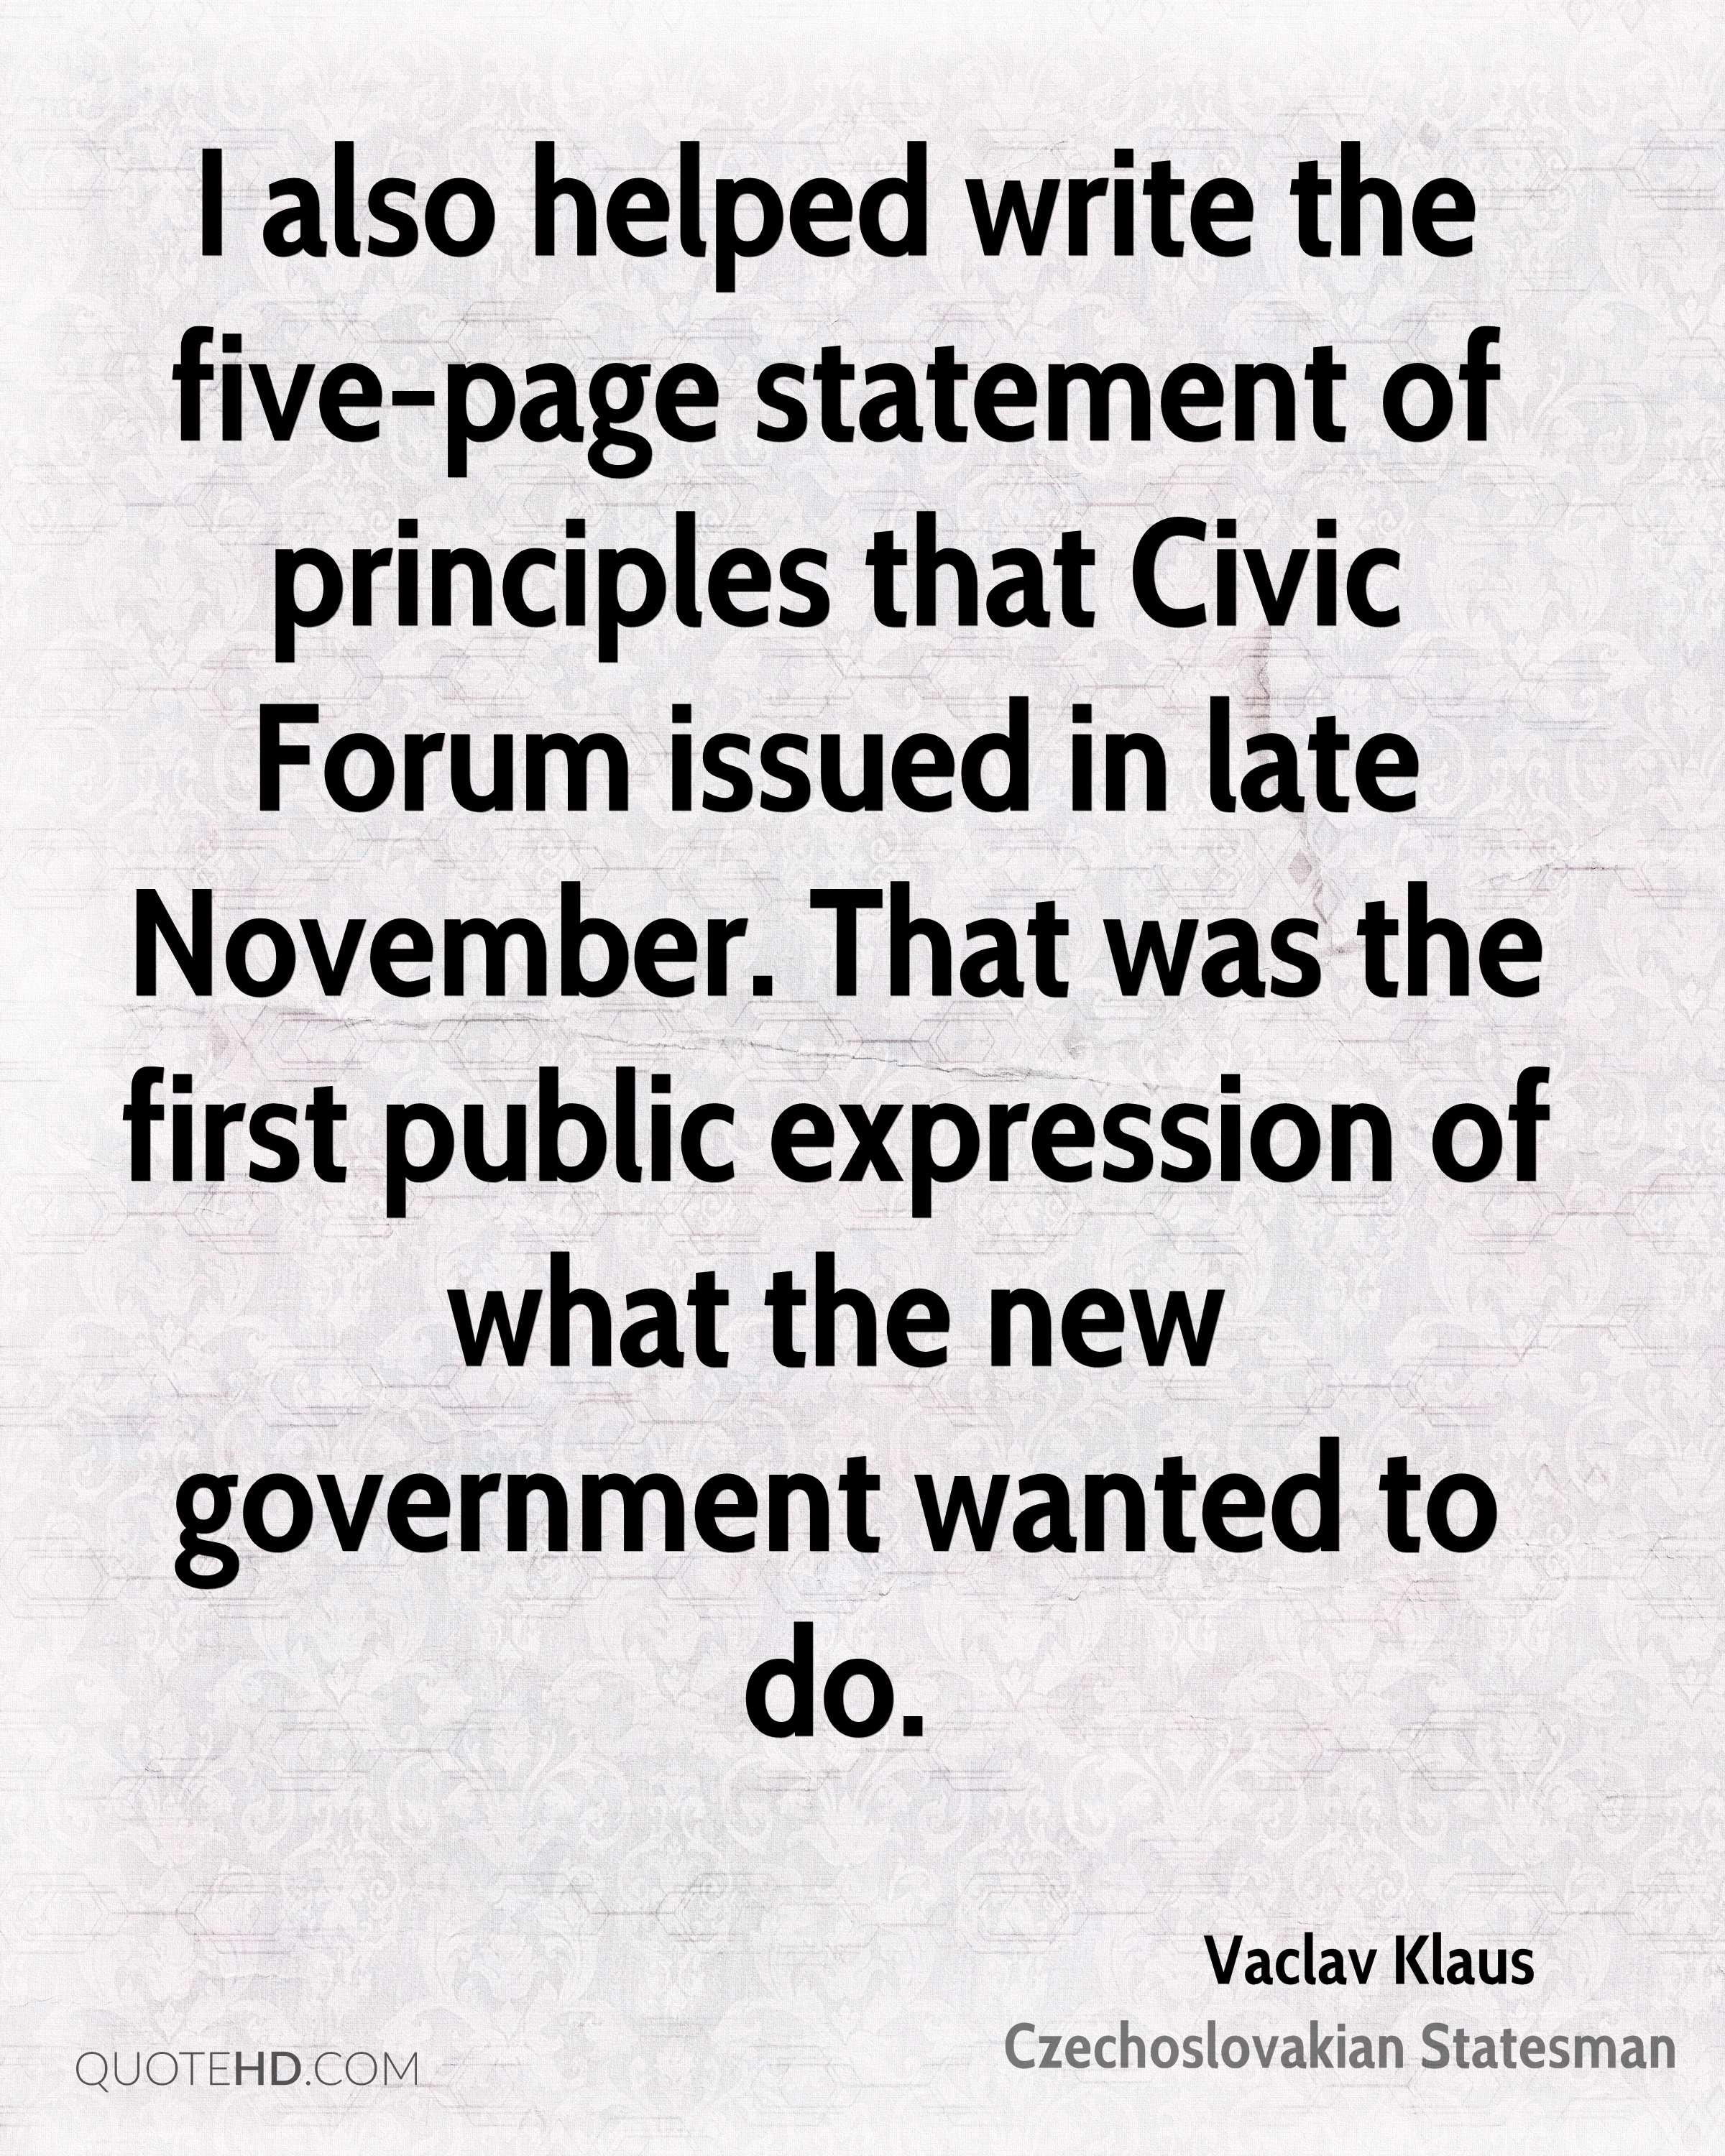 I also helped write the five-page statement of principles that Civic Forum issued in late November. That was the first public expression of what the new government wanted to do.